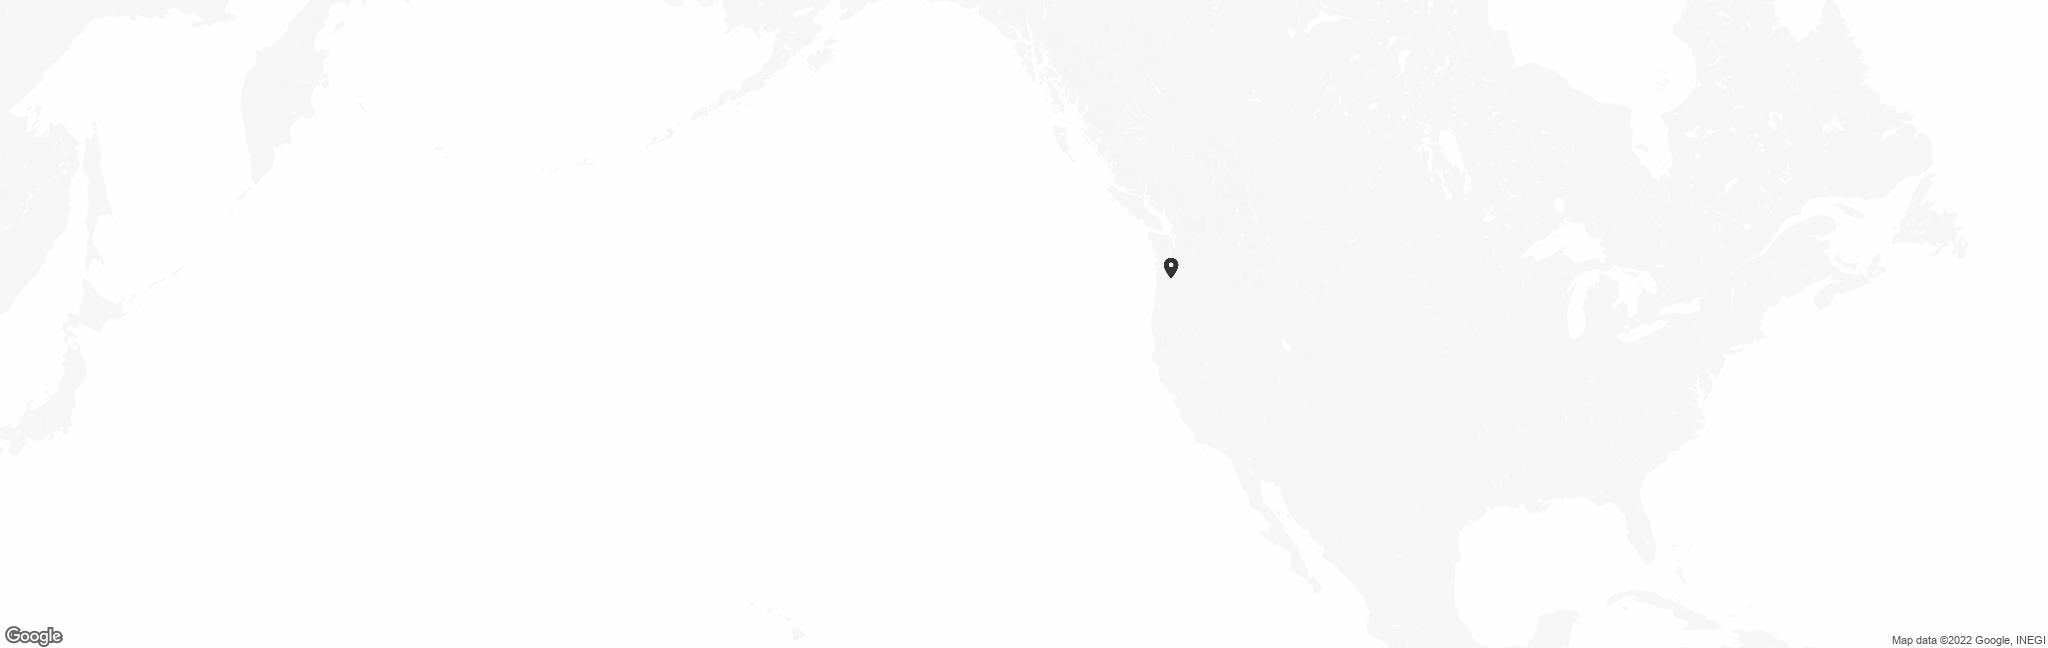 Map of US with pin of Setpath location